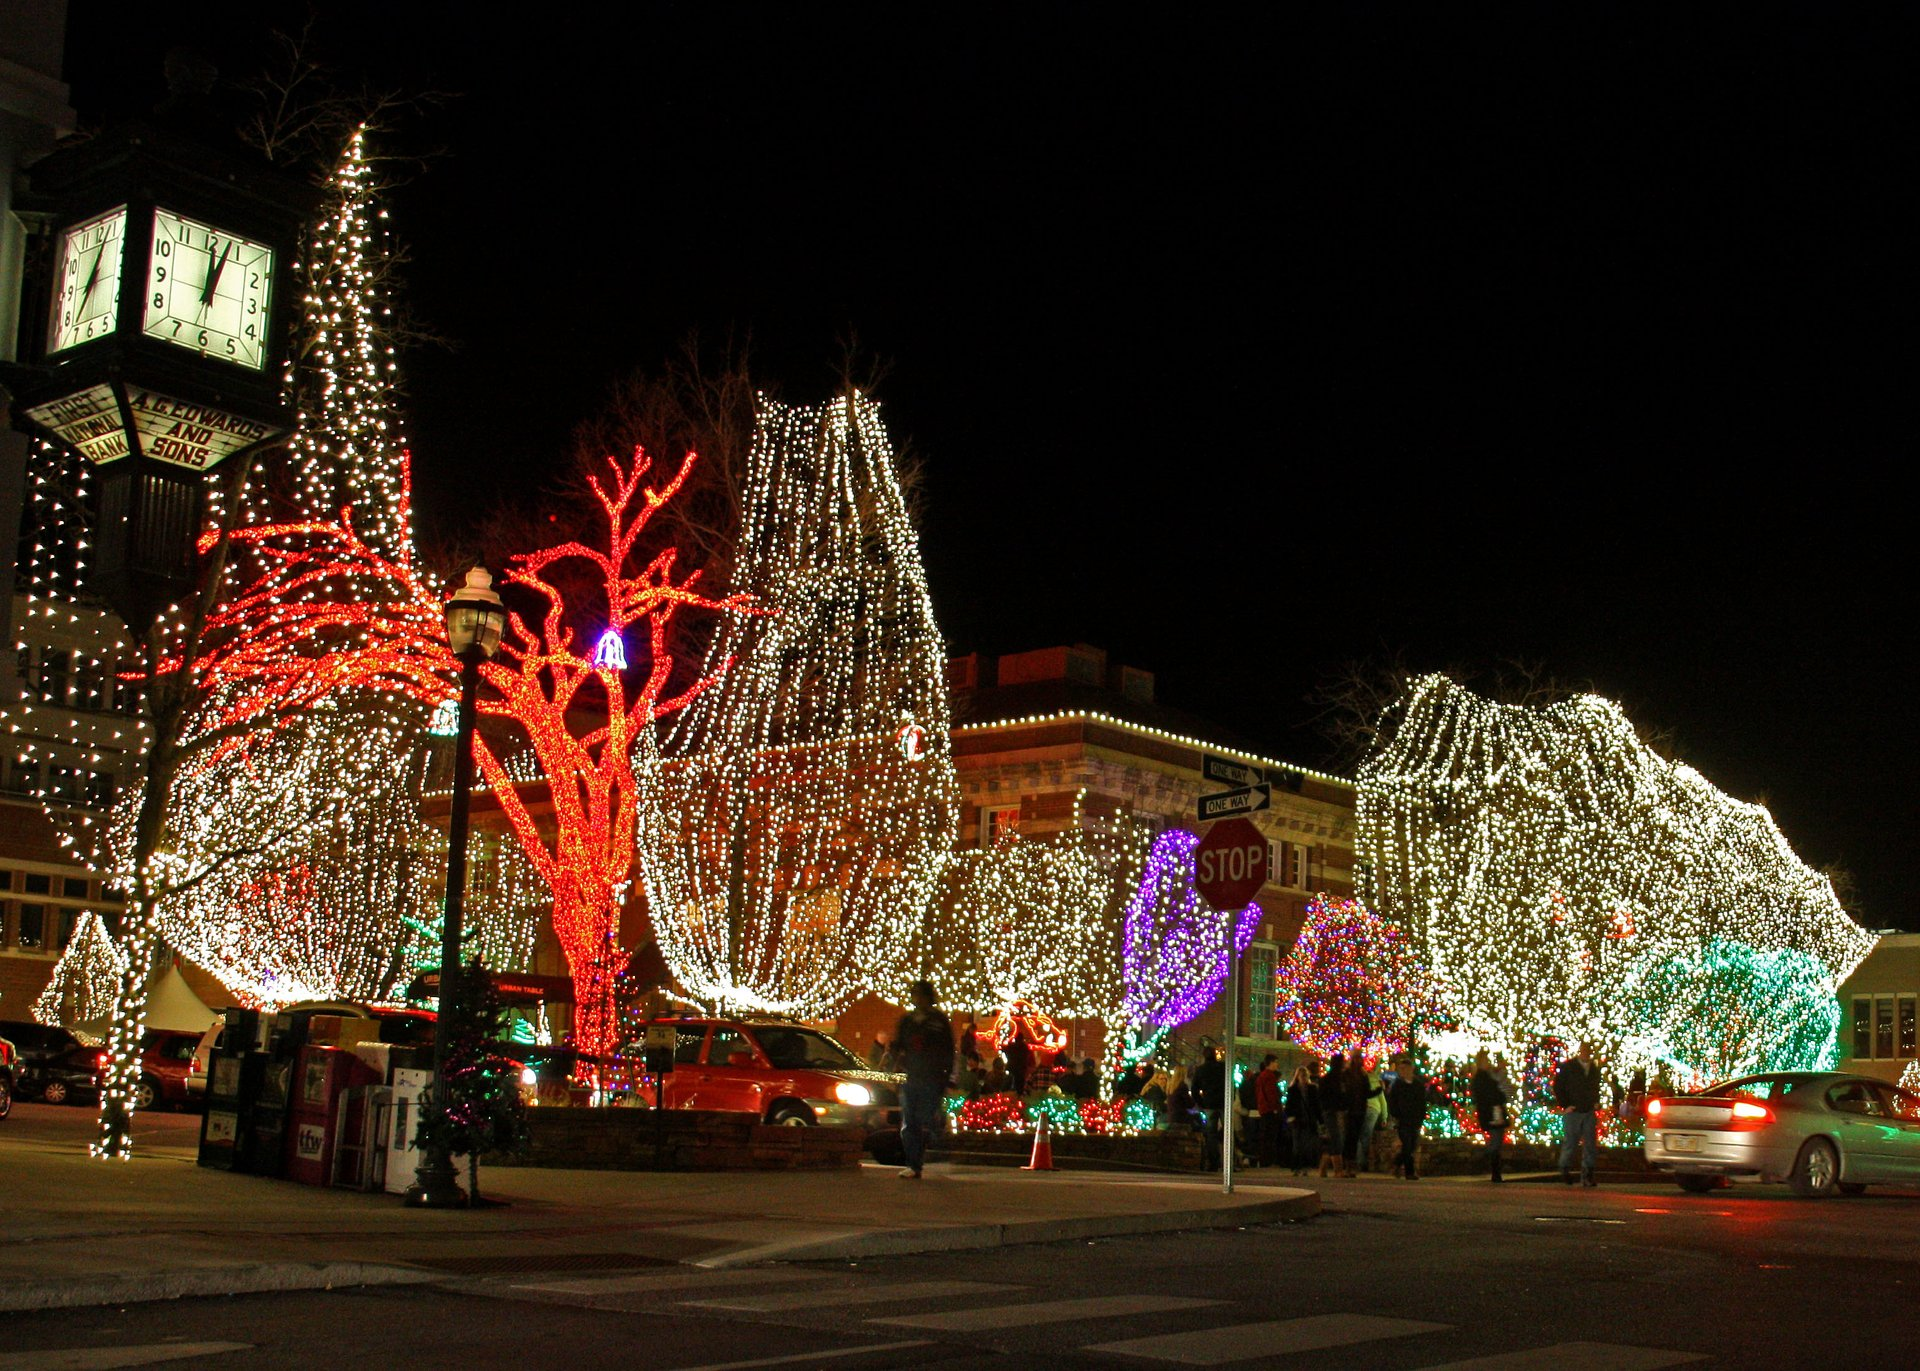 Fayetteville Christmas Lights 2020 Christmas Lights 2020 2021 in Arkansas   Dates